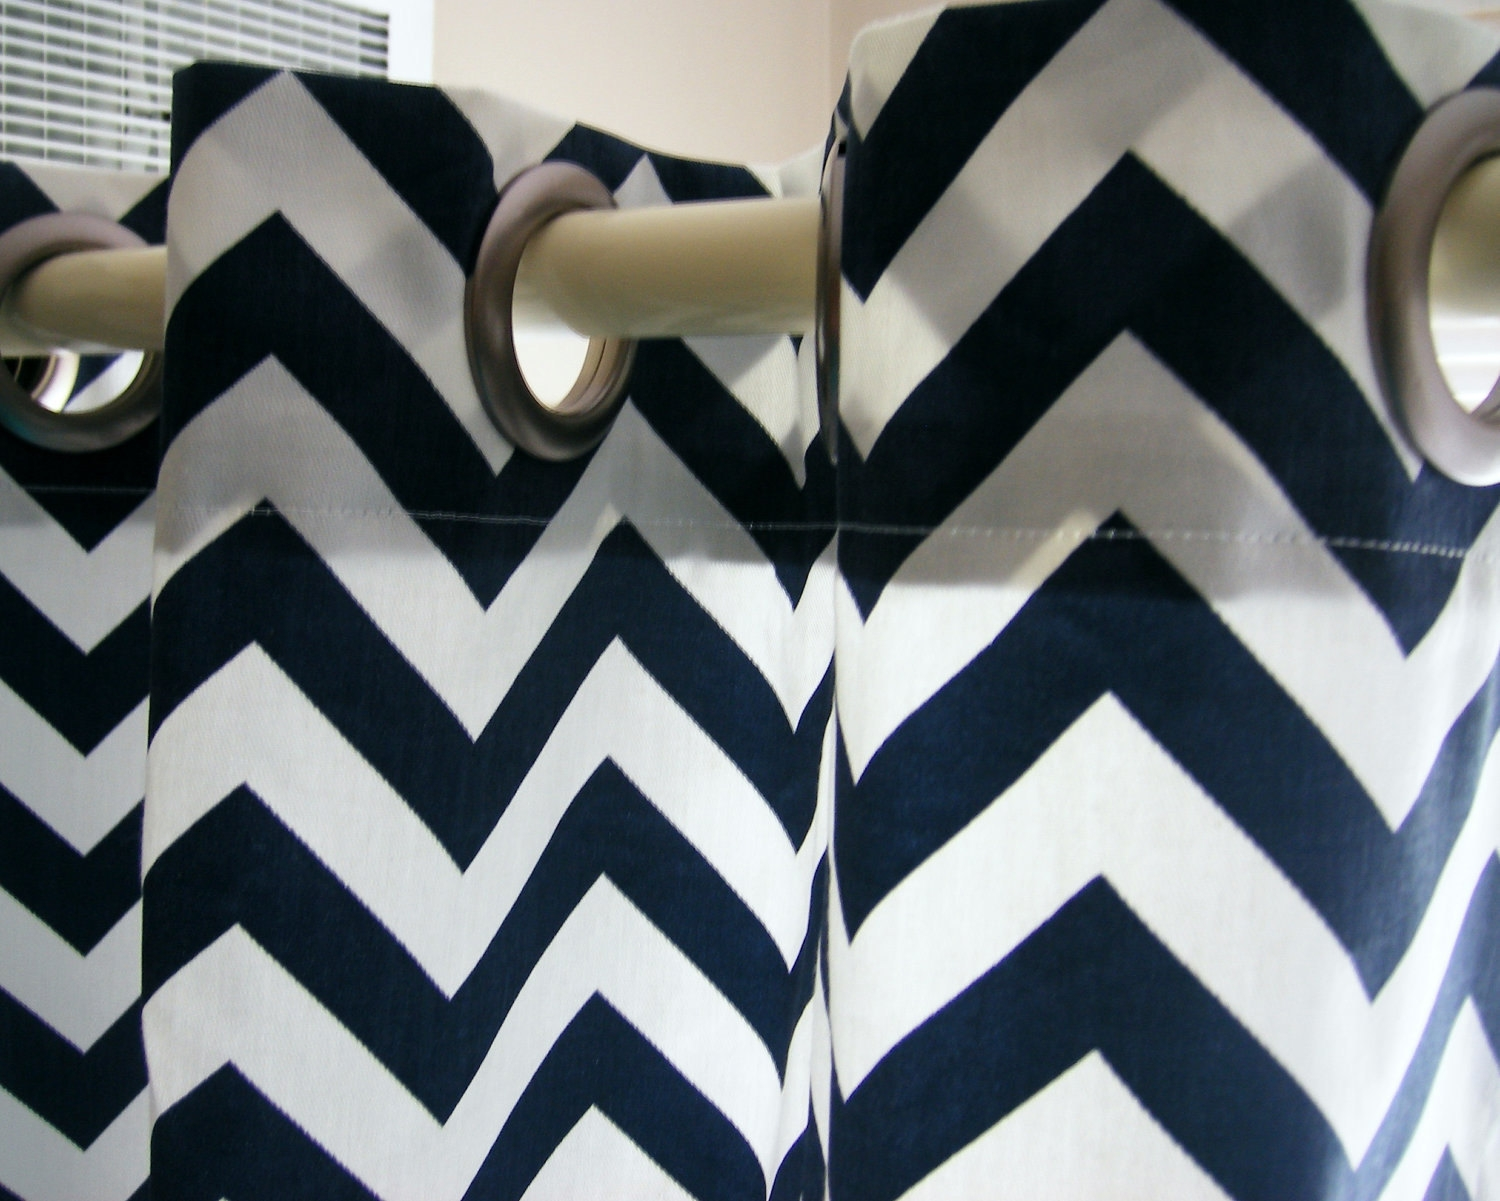 Grey Chevron Shower Curtain Within Gray Chevron Shower Curtains (Image 10 of 25)